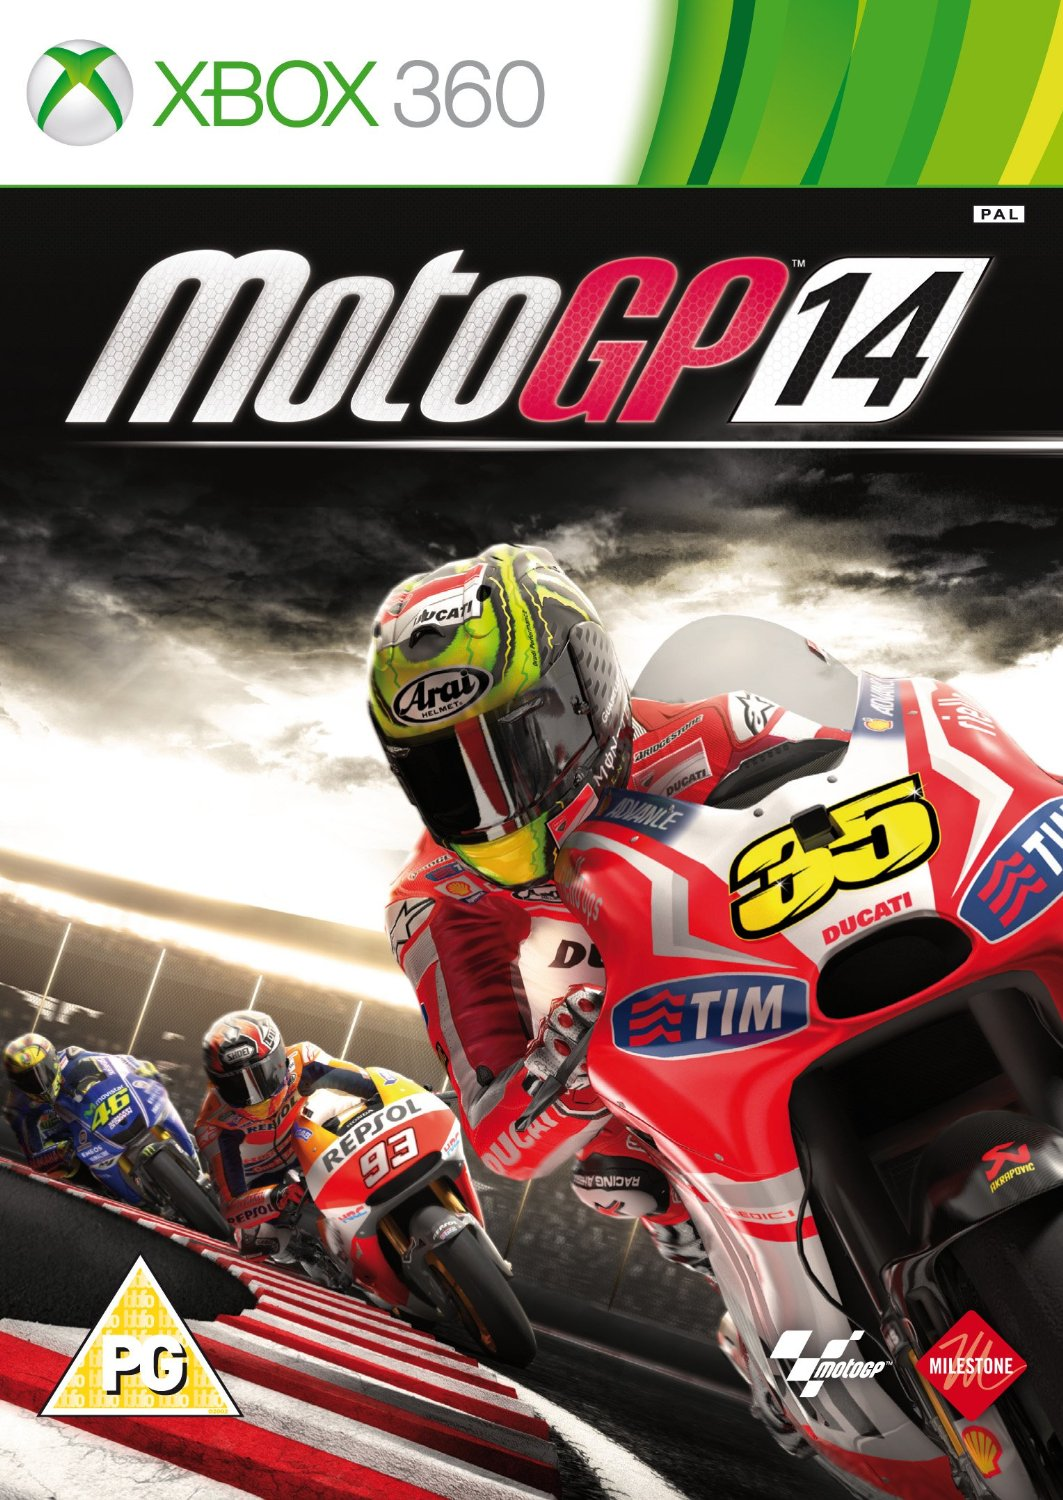 http://rozup.ir/up/narsis3/Pictures/MotoGP-14-xbox360-cover-large.jpg